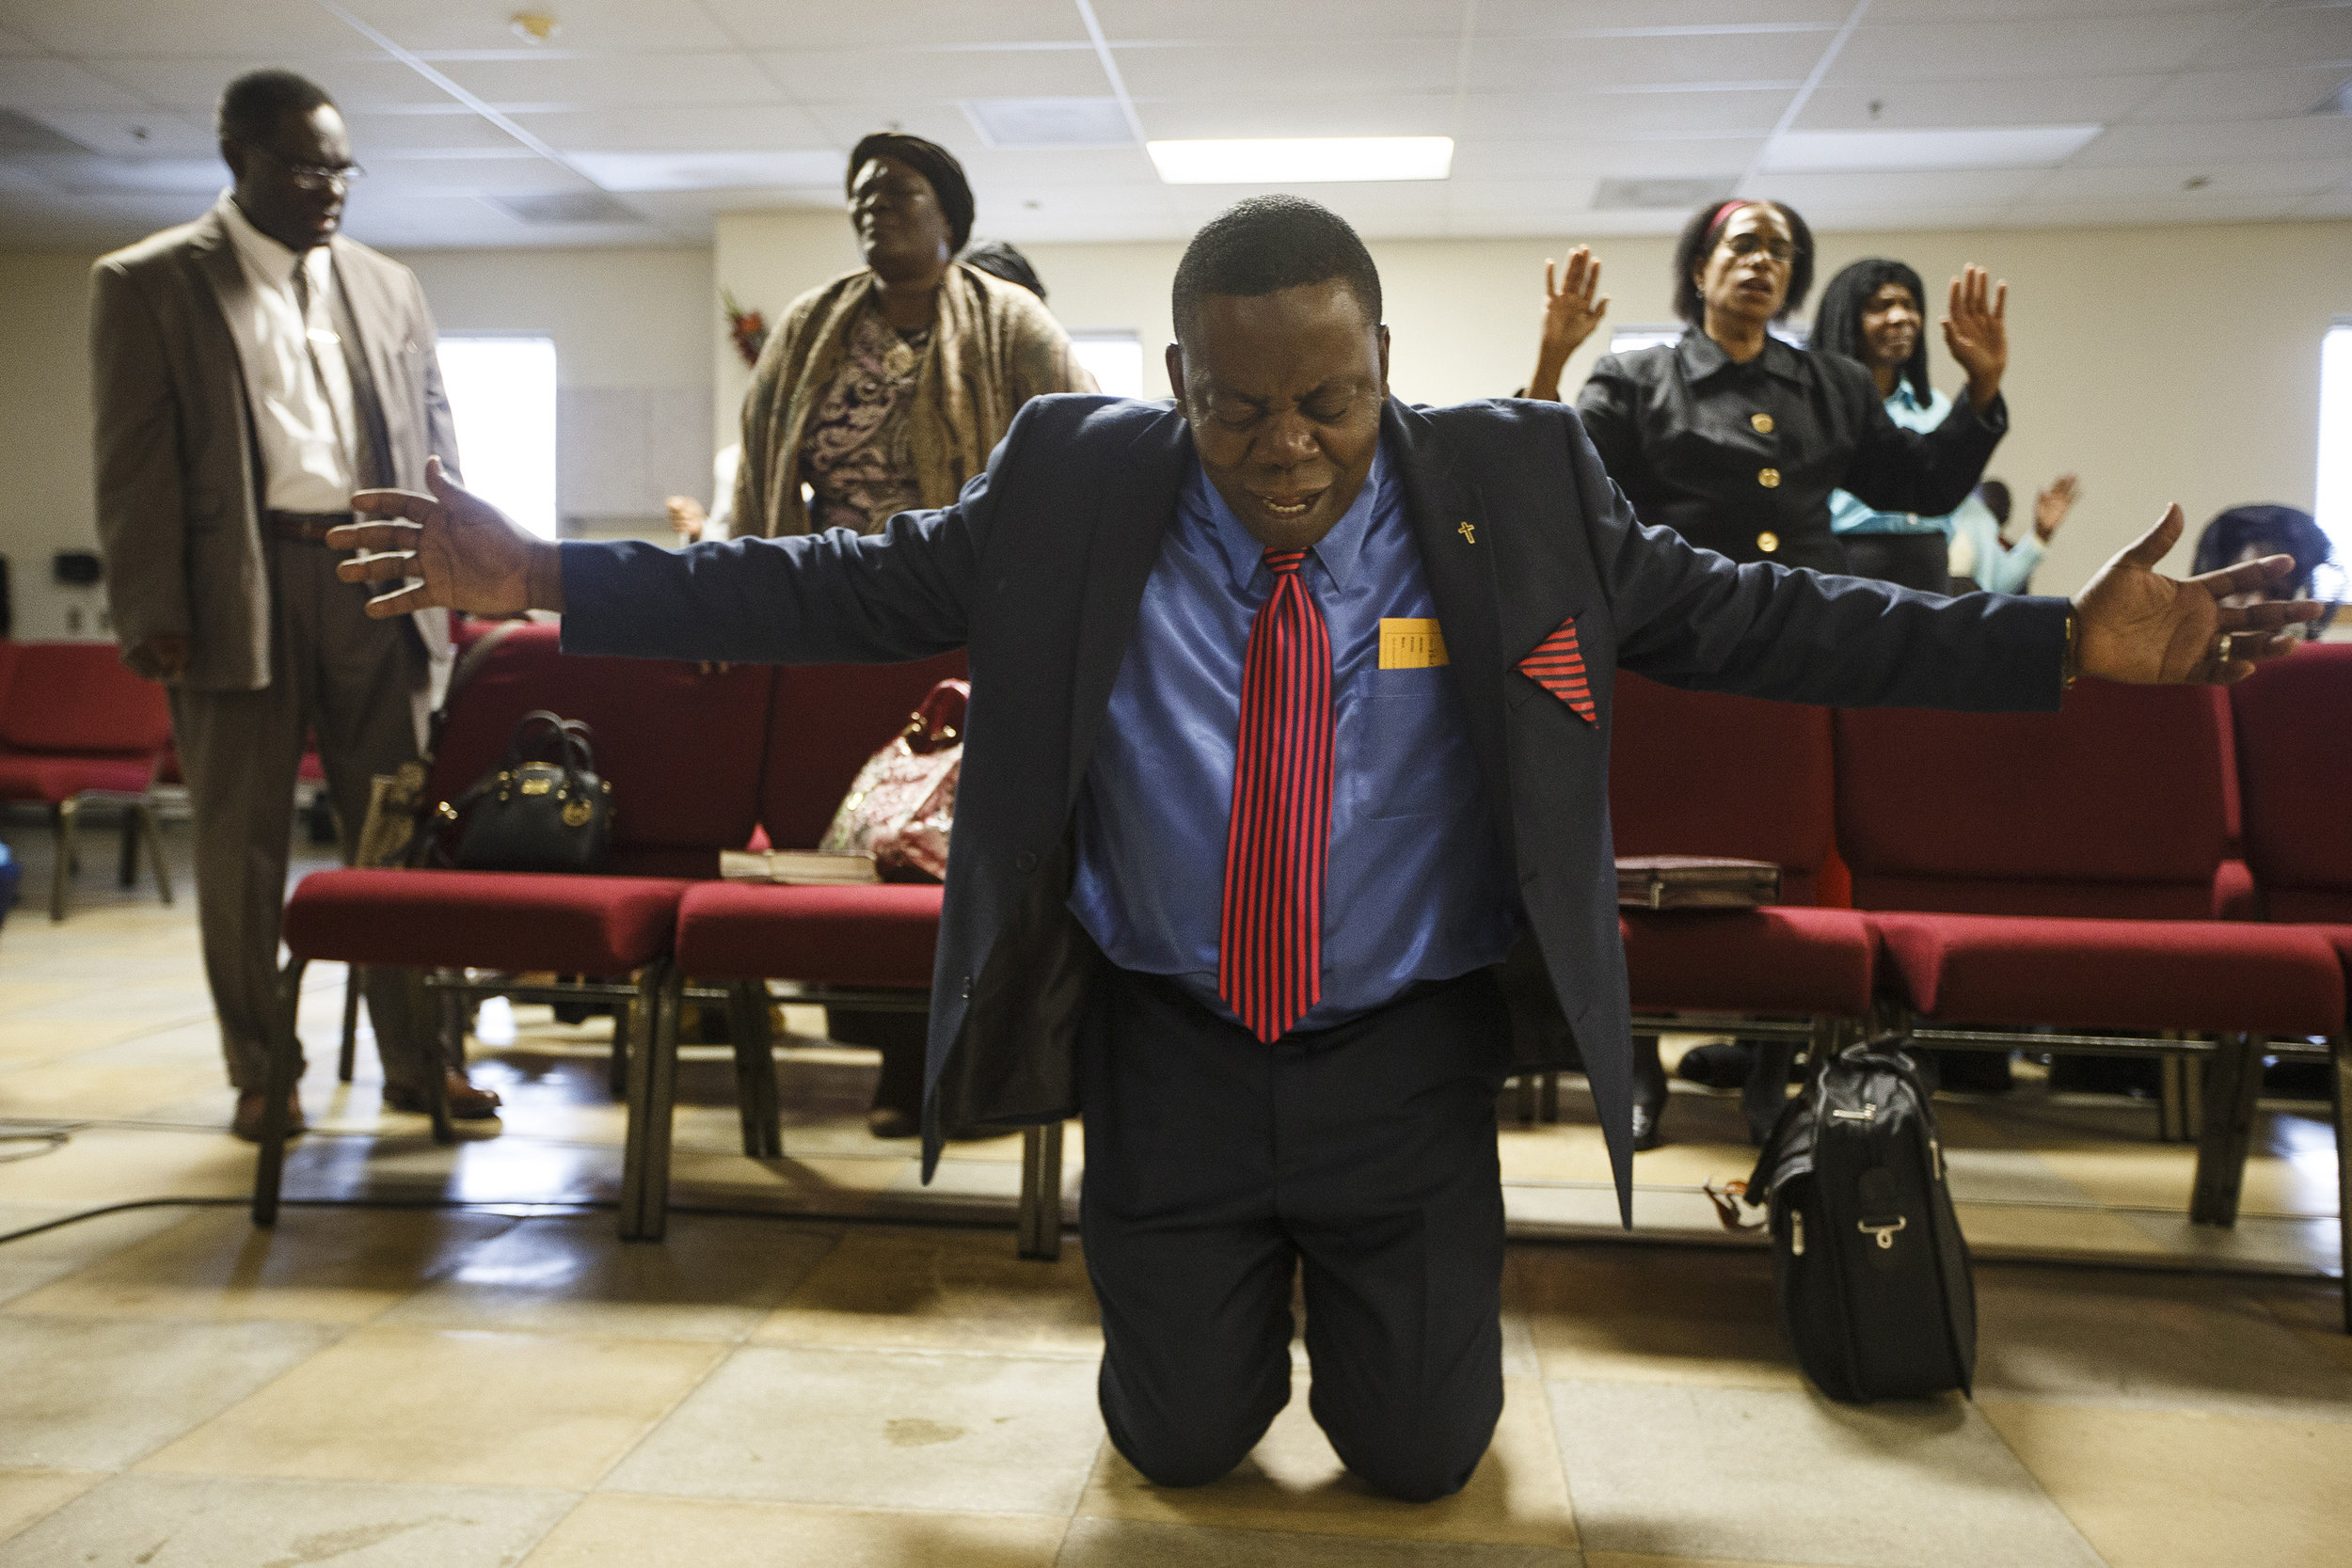 Pastor Jean Jeune leads congregants prays for hurricane victims during service at the First Christian Church Source of Grace, a church frequented by the Haitian community, in Boston, MA, October 9, 2016.    Several members of the church have family and friends affected by the destruction Hurricane Matthew left in Haiti.